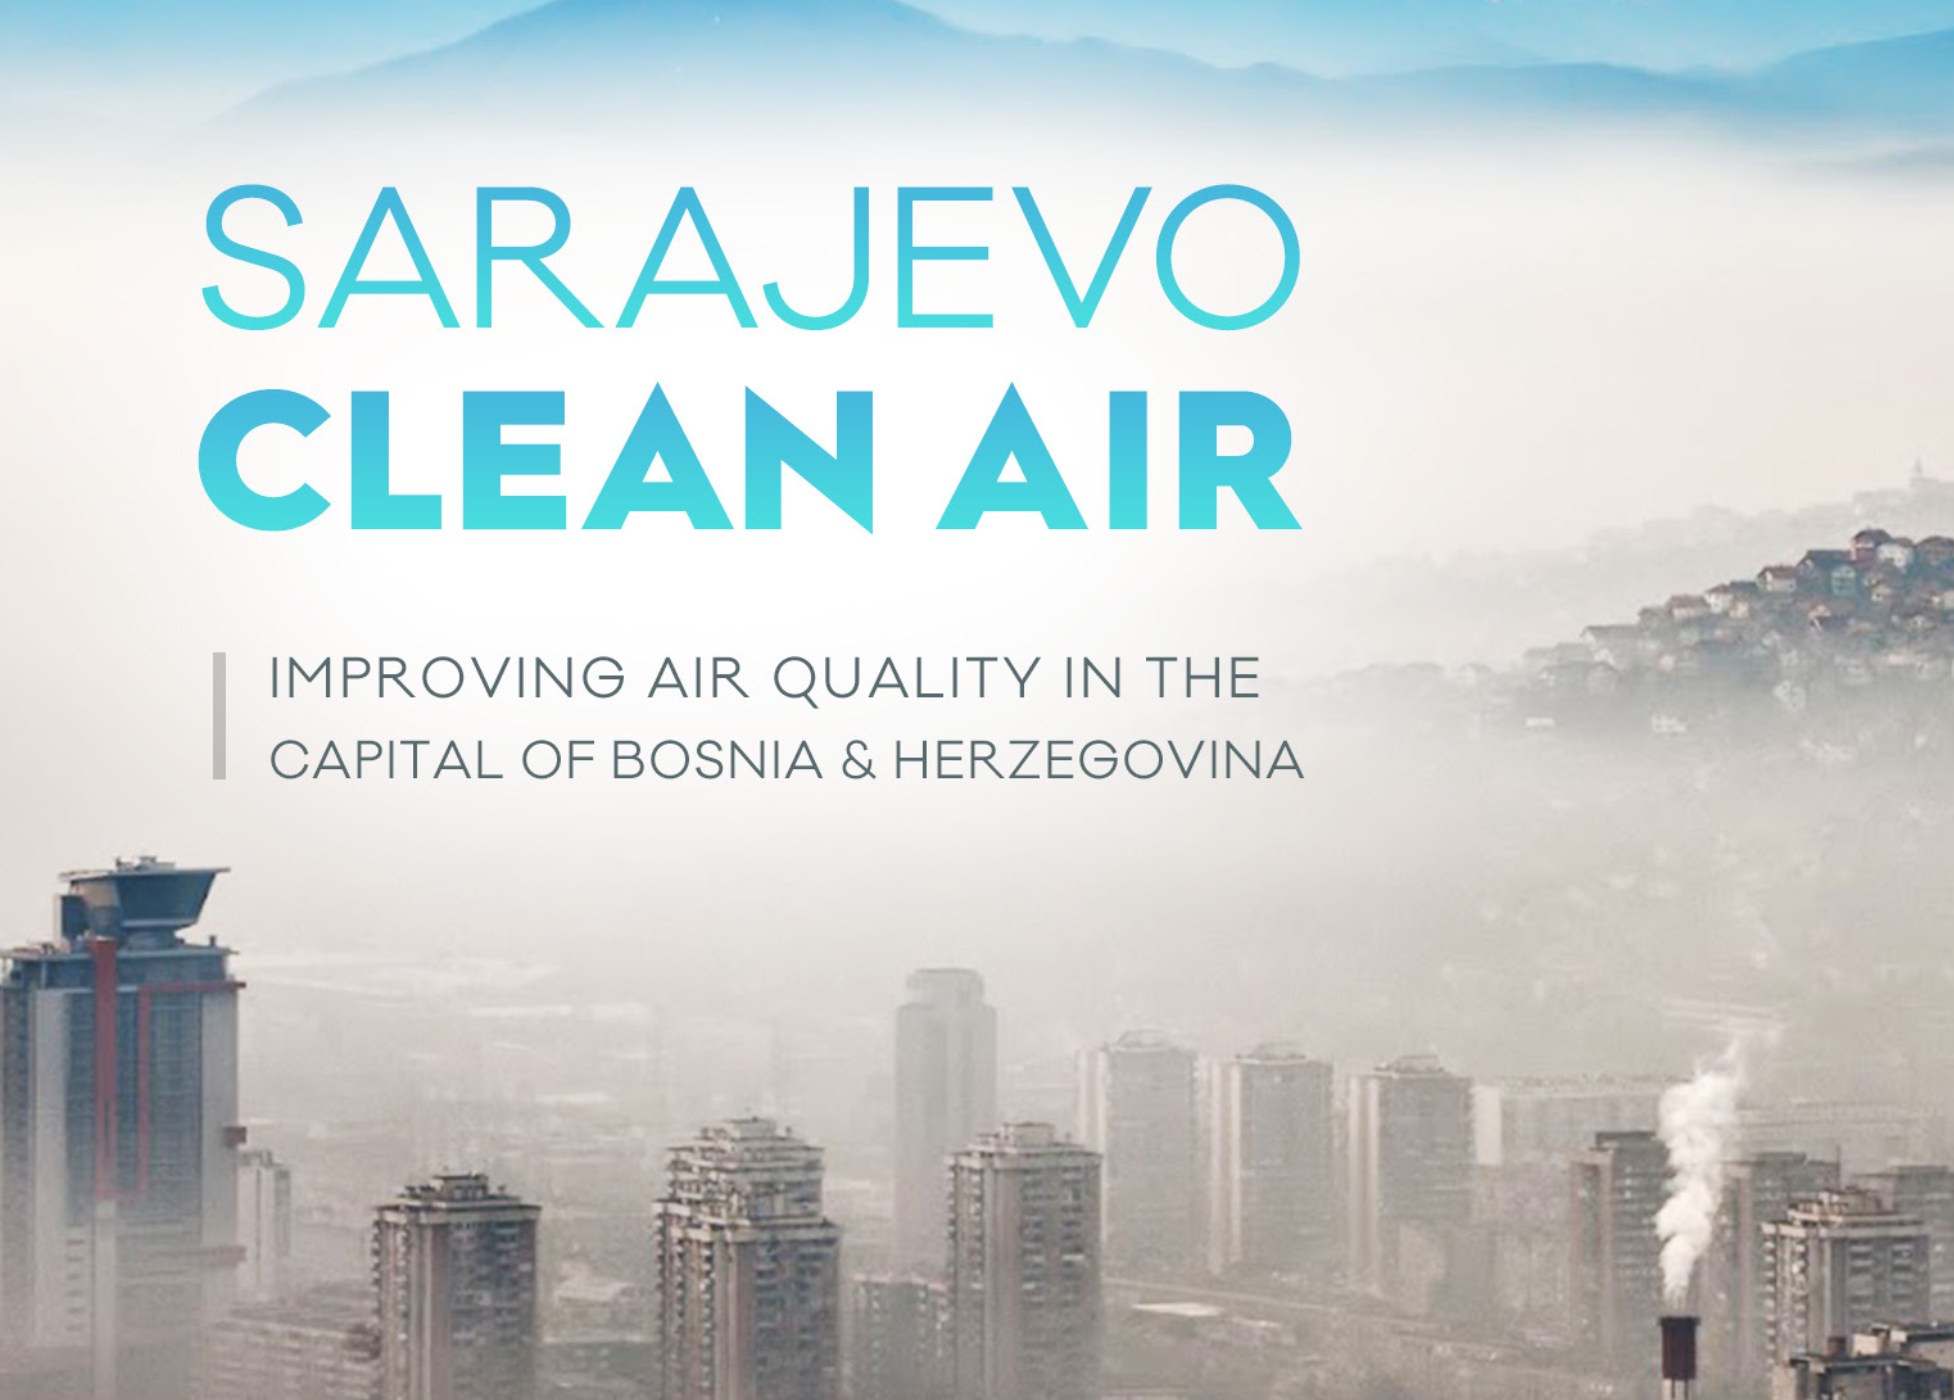 The most polluted capital in Europe